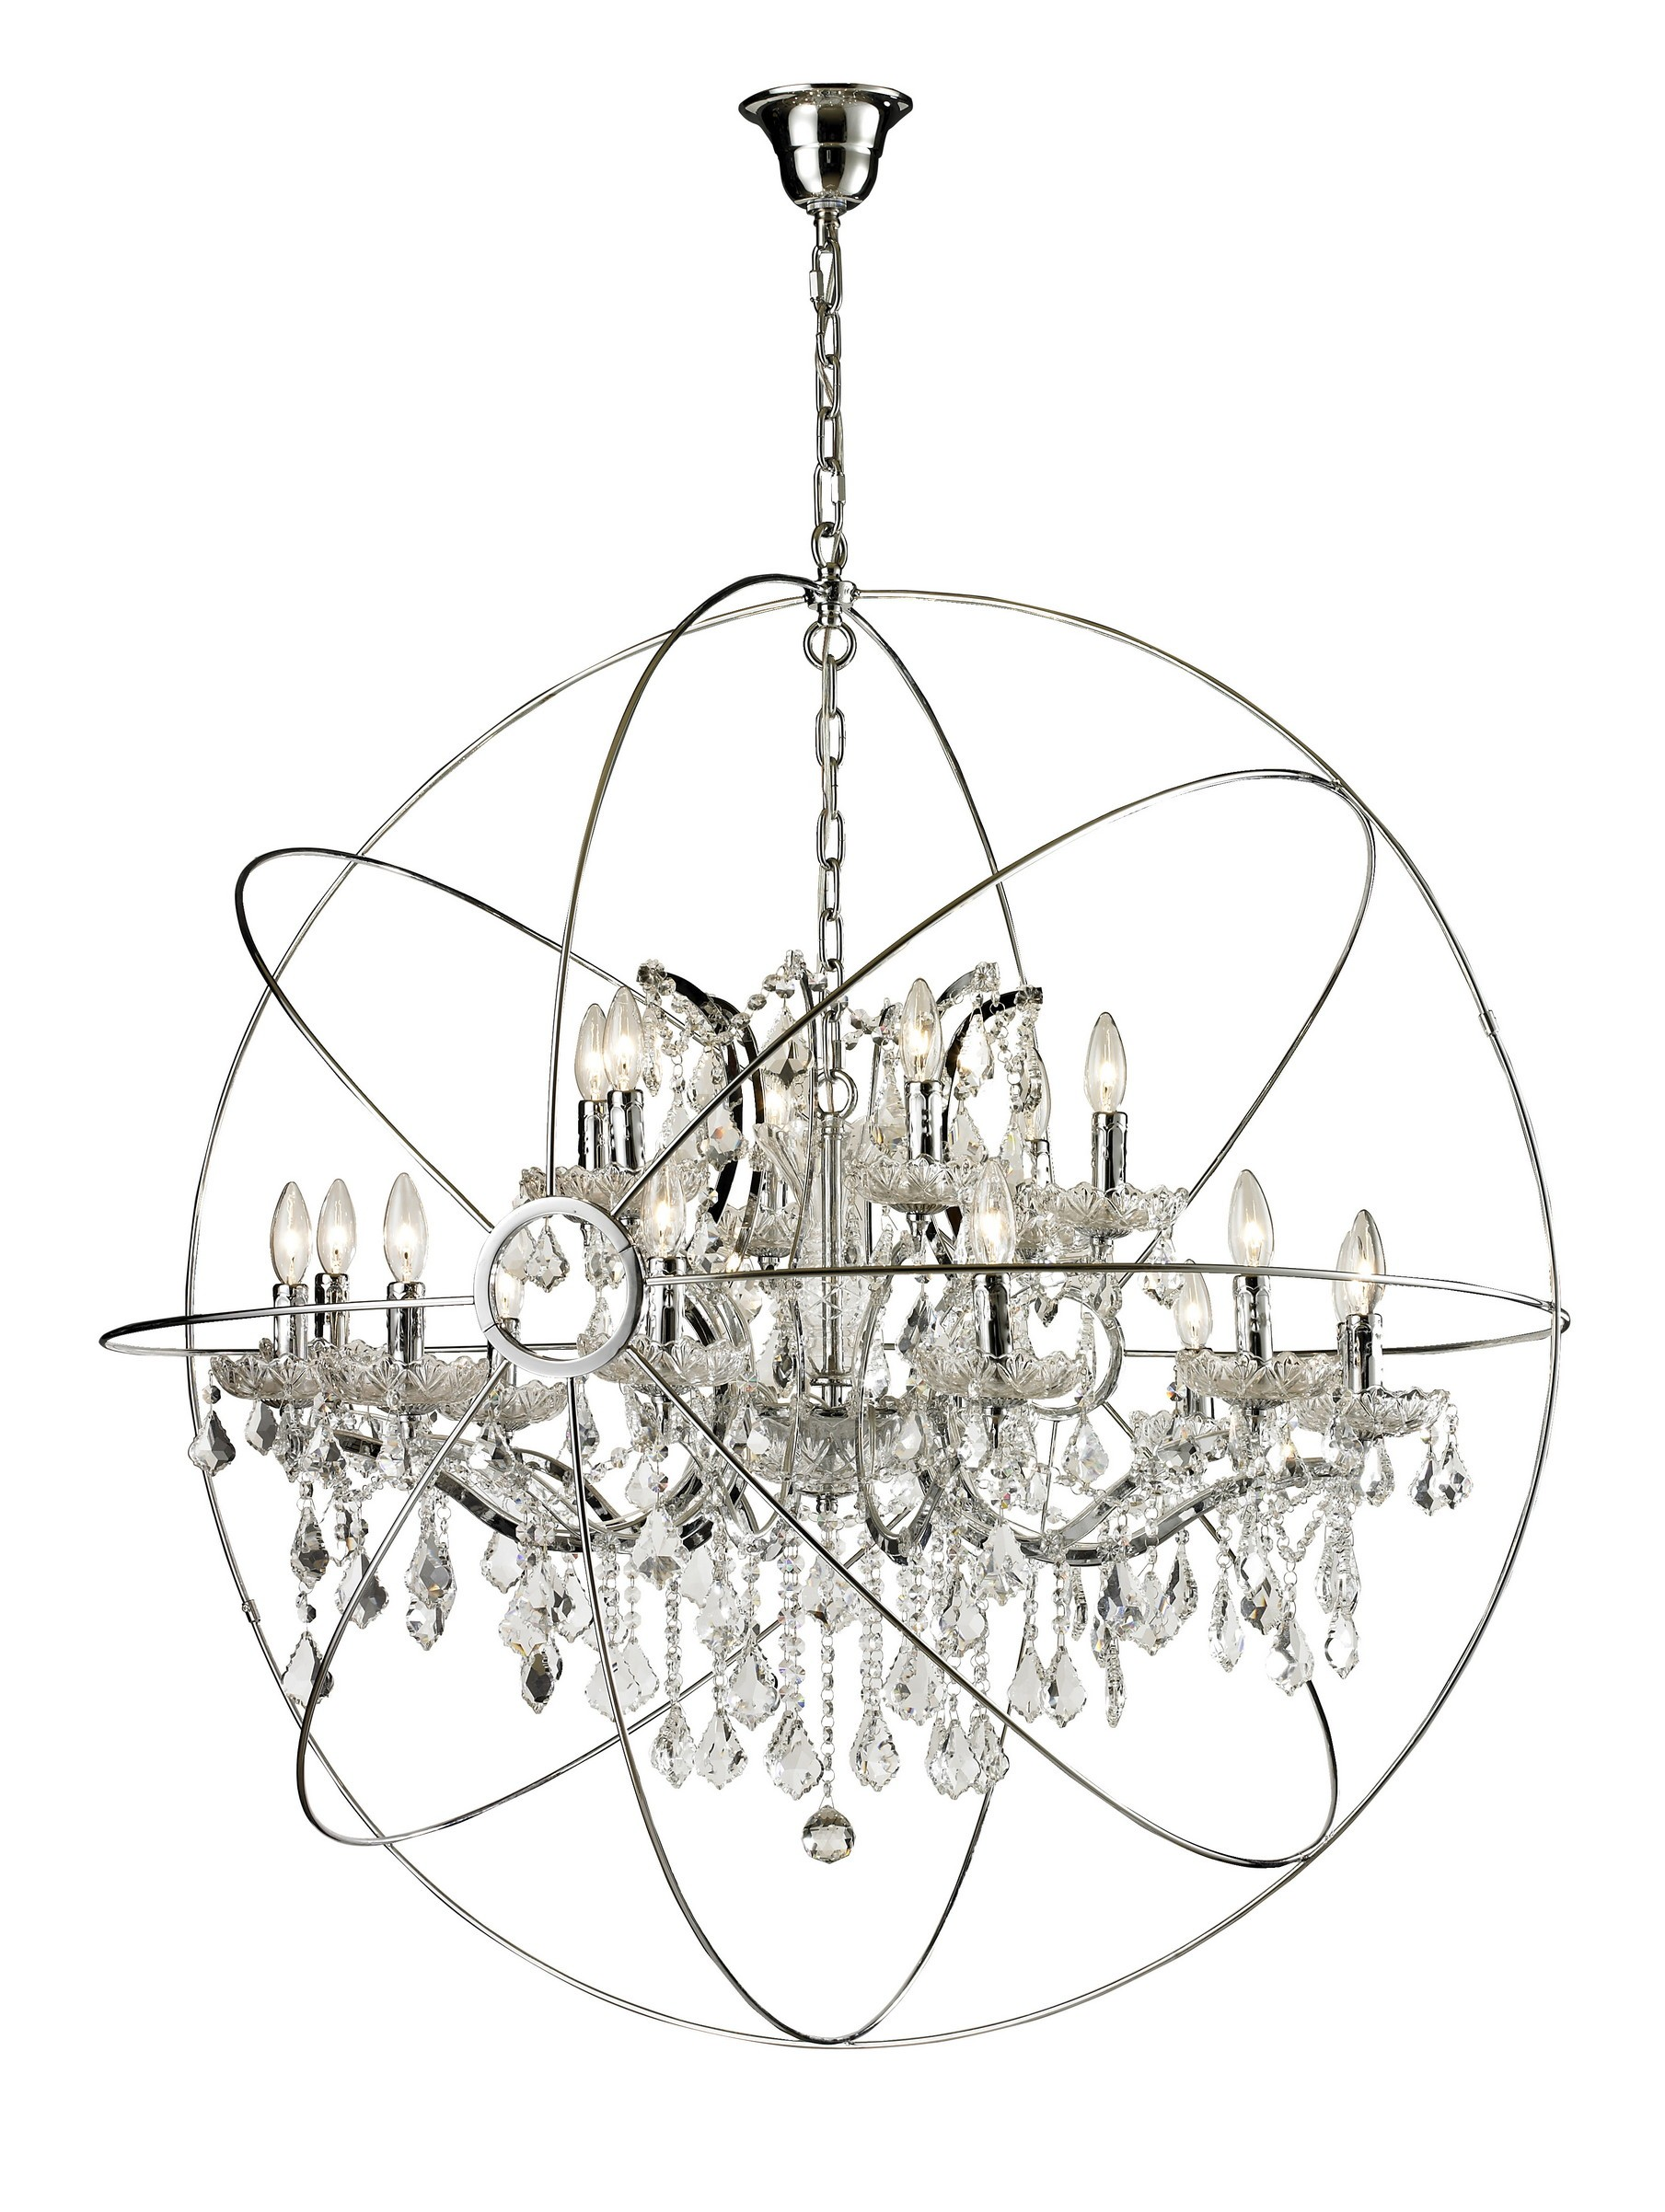 Cozy sphere chandelier metal orb chandelier with interesting Cheap Price for your Home Lighting